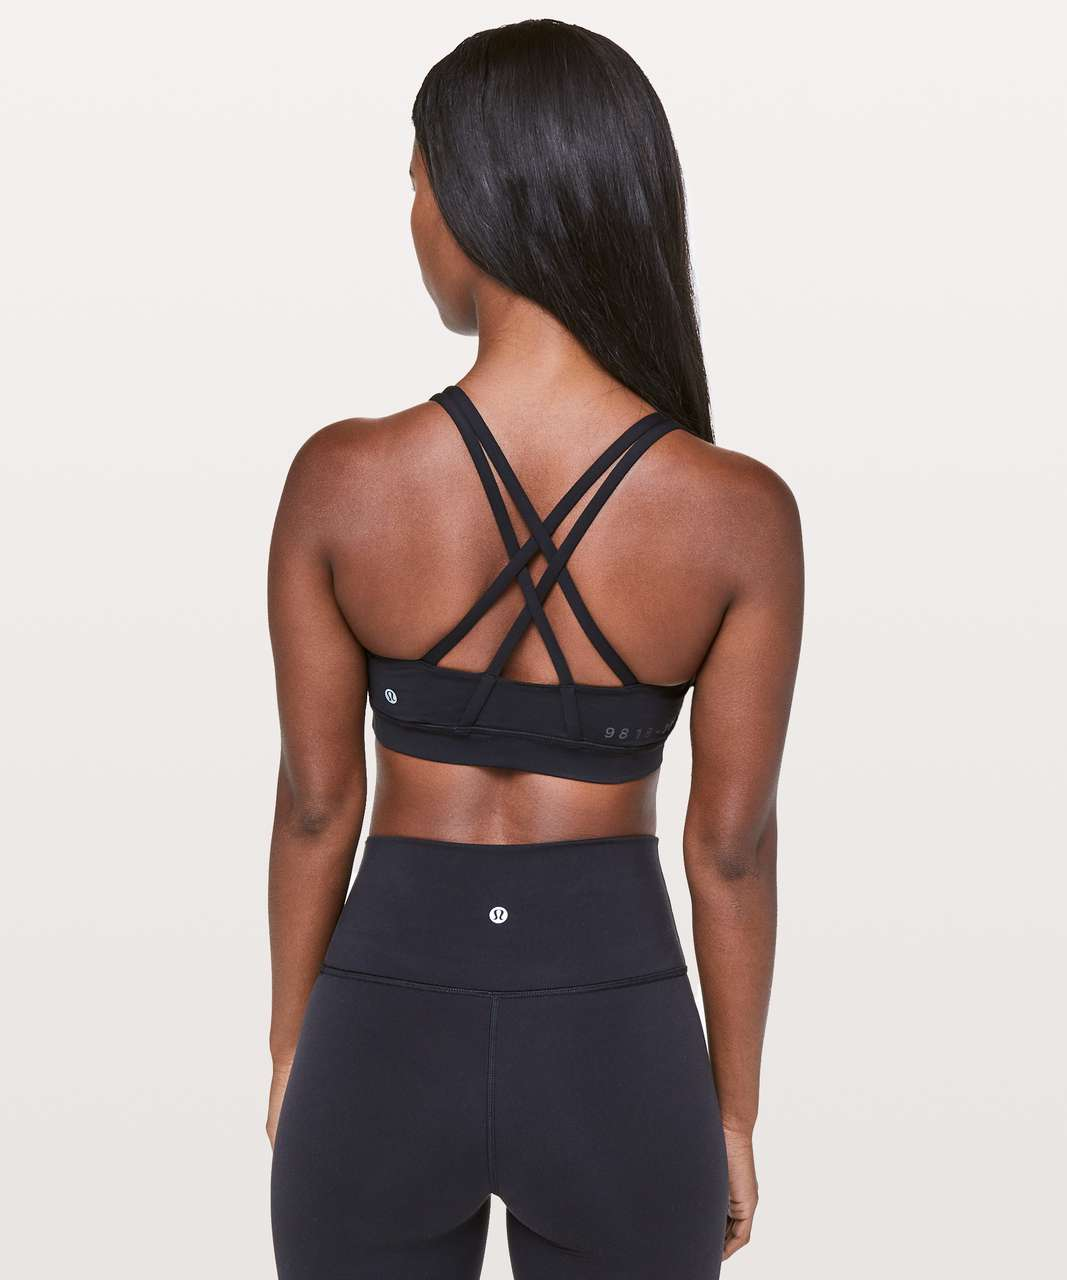 Lululemon Energy Bra *20Y Collection - Black